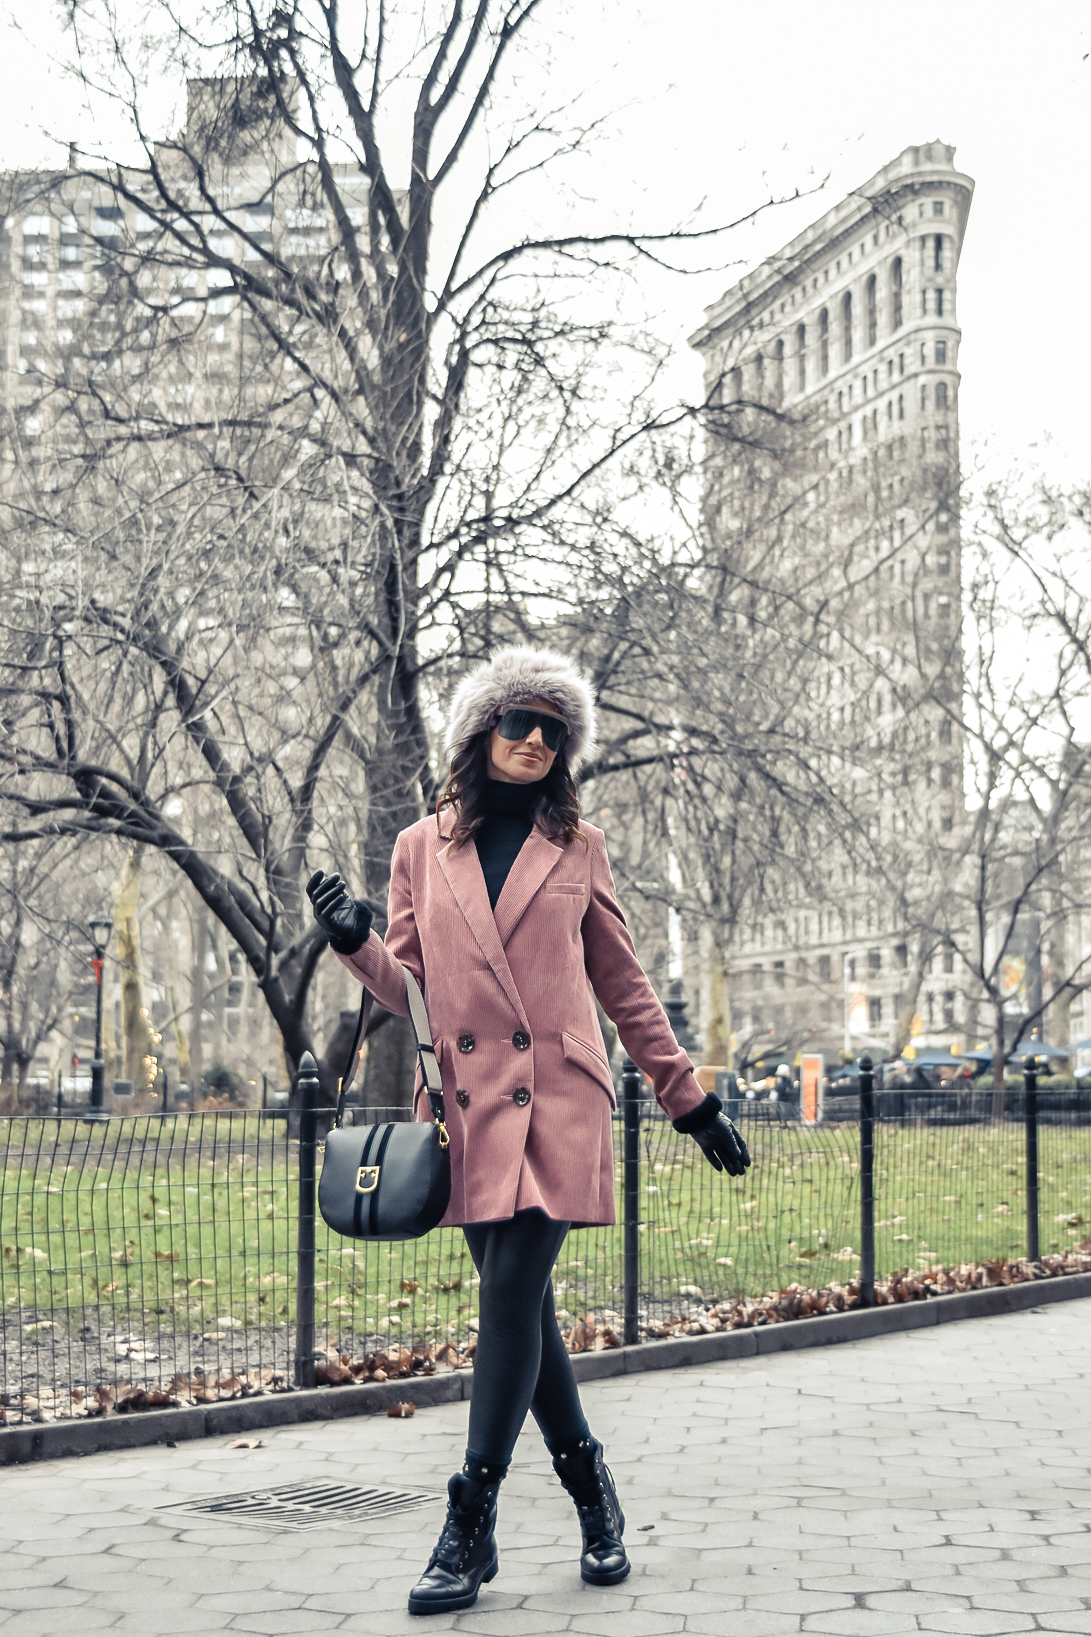 el-blog-de-silvia-look-invernal-nueva-york-01